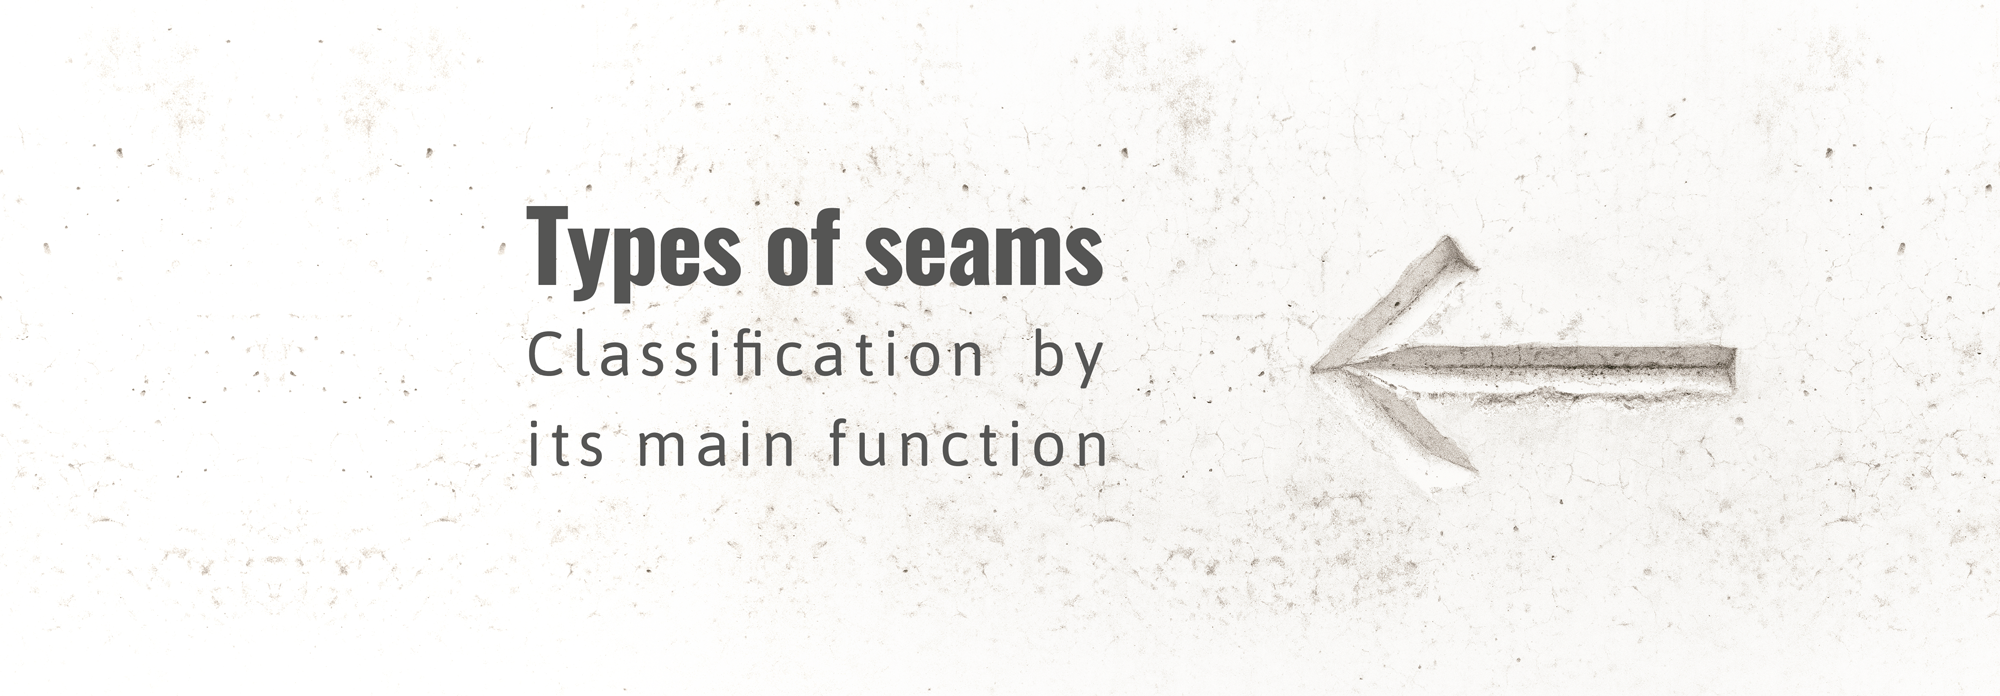 Types of seams. According to their main function